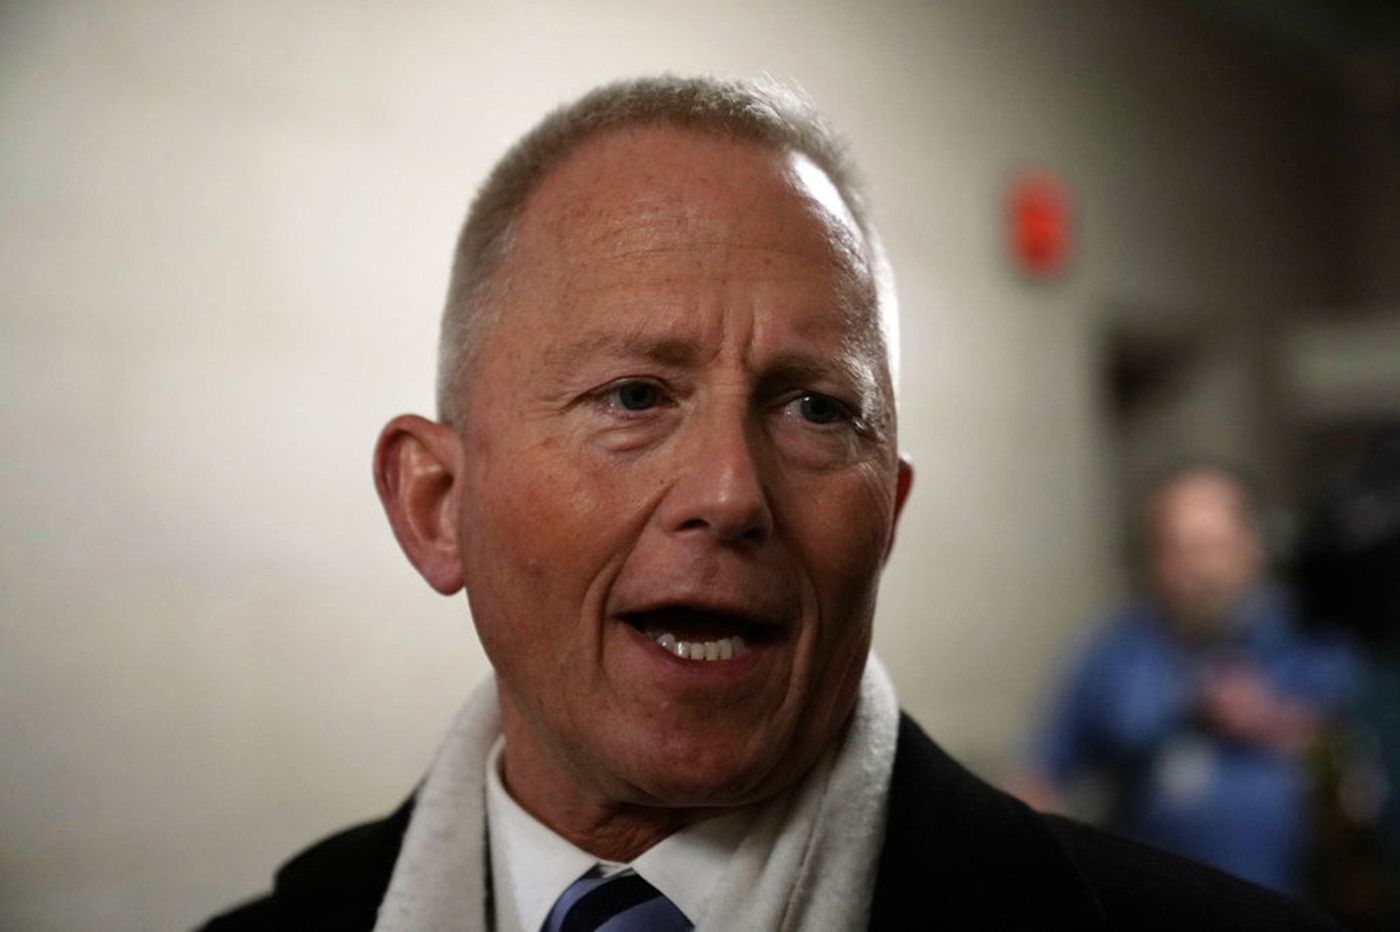 New Jersey Rep. Jeff Van Drew, anti-impeachment Democrat, poised to switch parties after personal plea from Trump